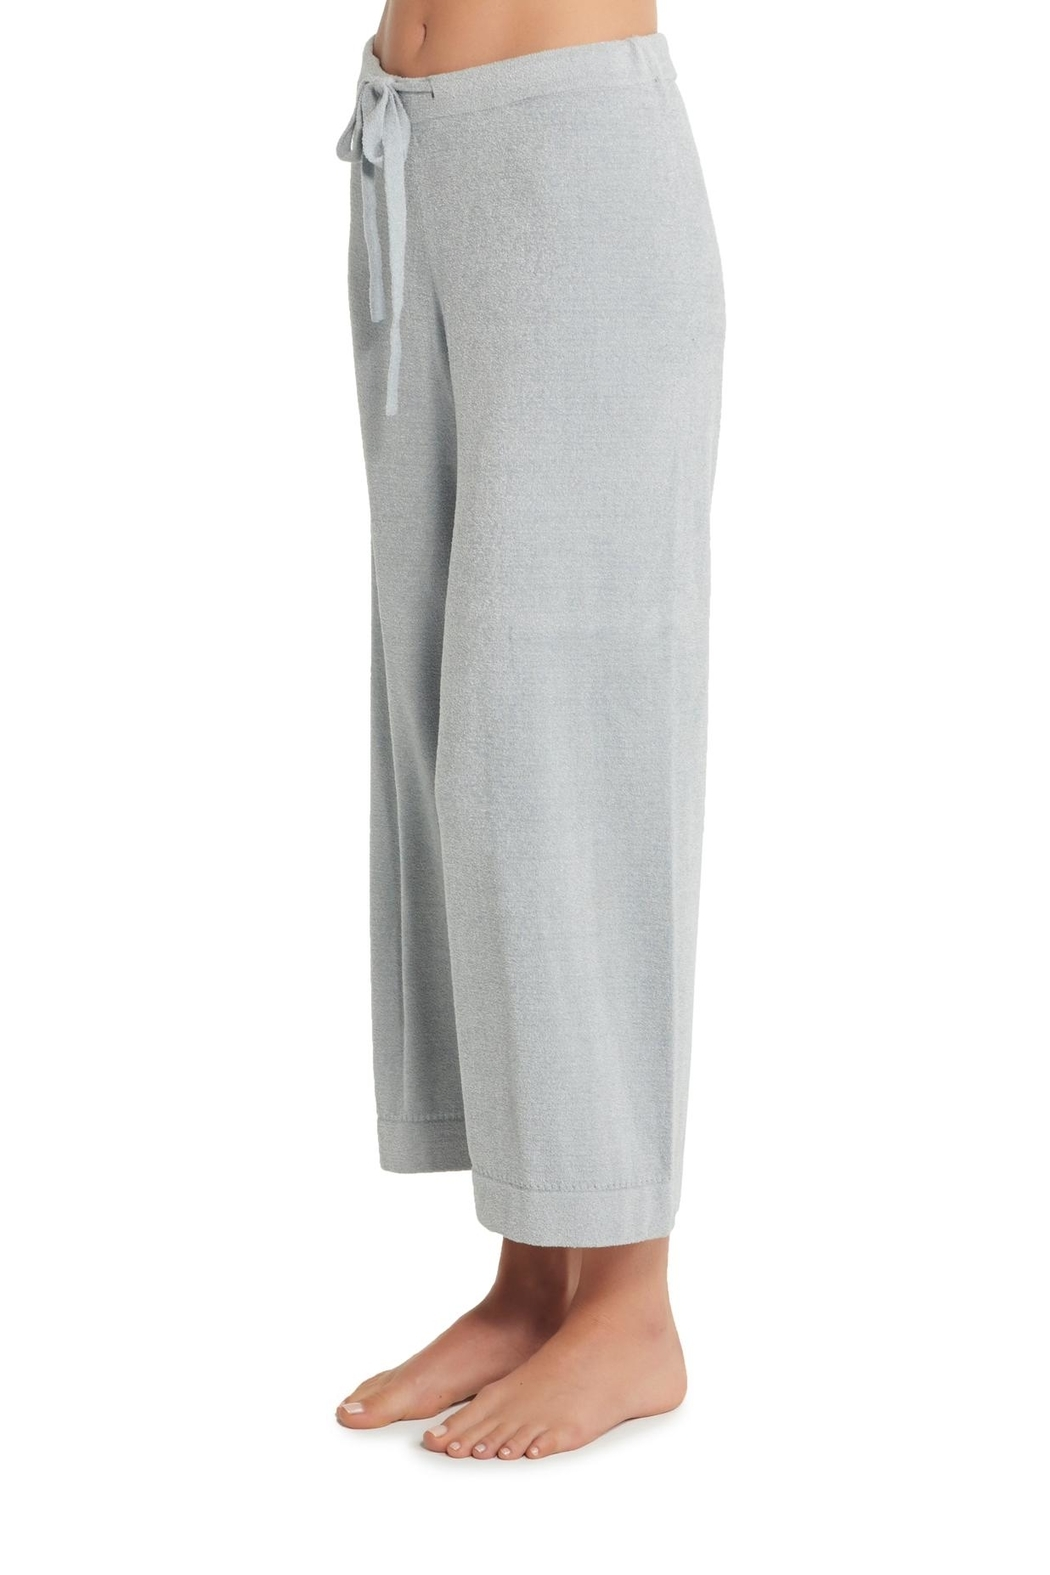 Barefoot Dreams Cozychic Ultralite Culotte - Front Full Image